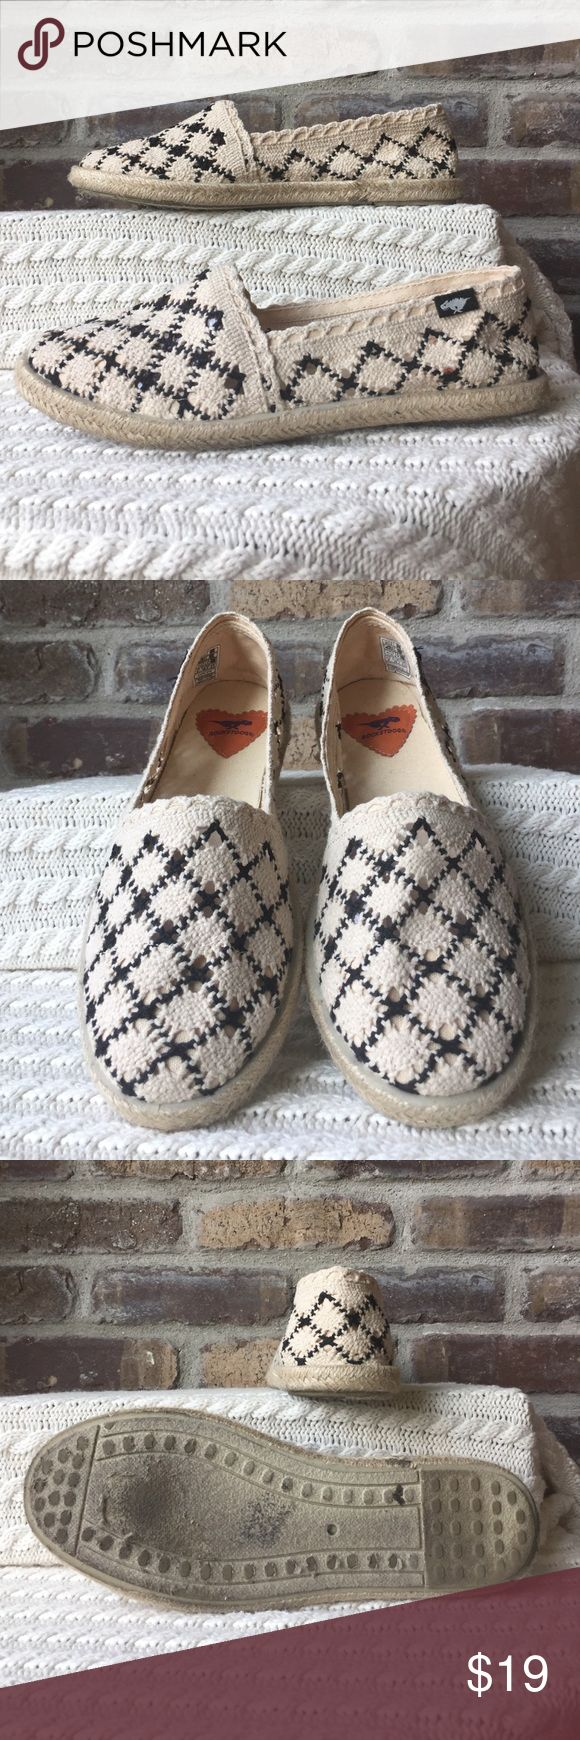 Rocket Dogs espadrilles Women's size 8 cream and black Rocket  Dog espadrilles. They have been worn. Rocket Dog Shoes Espadrilles